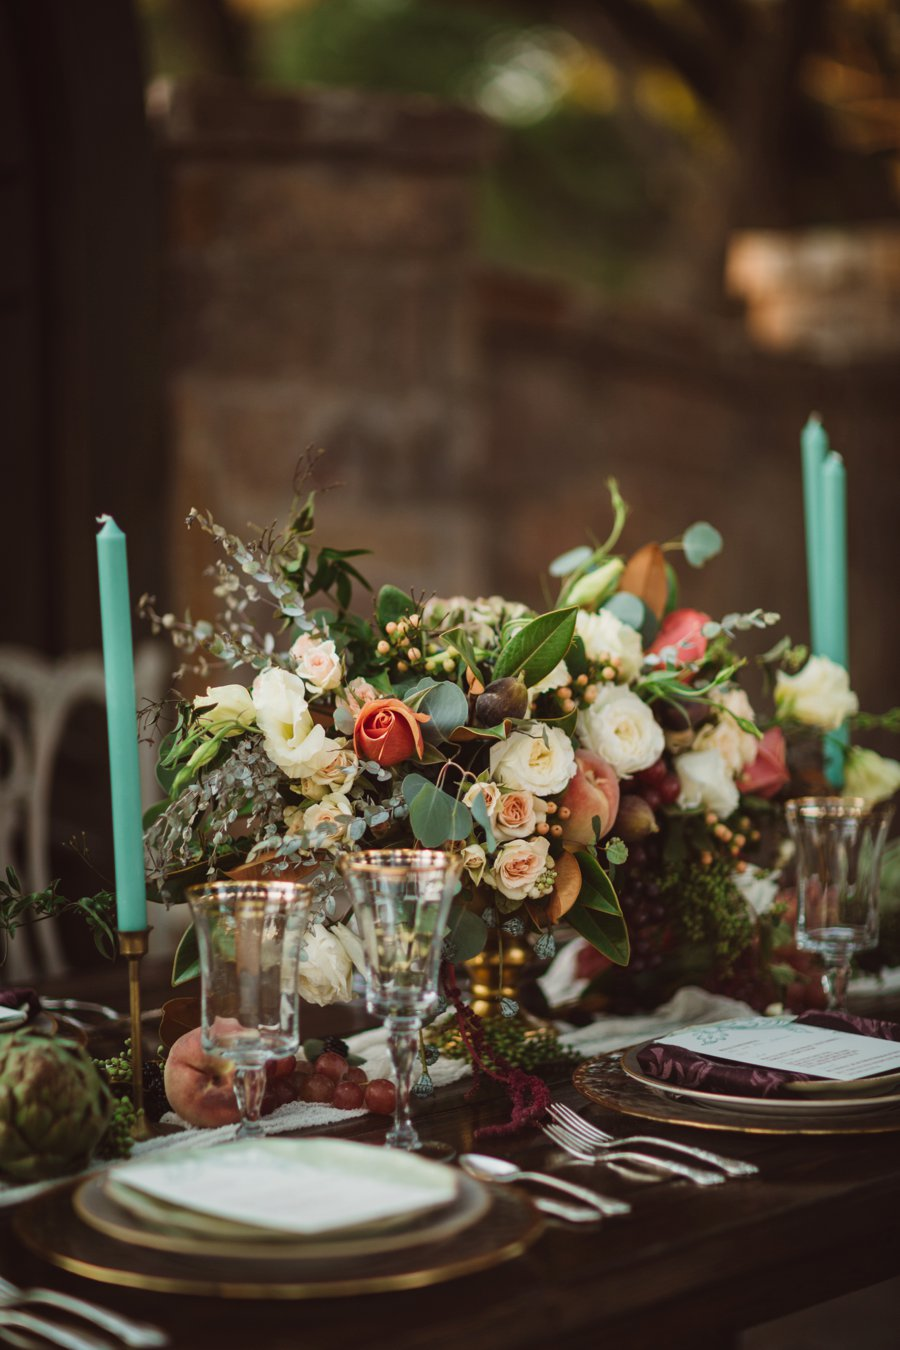 Plum, Peach, & Teal Art Inspired Wedding Ideas via TheELD.com